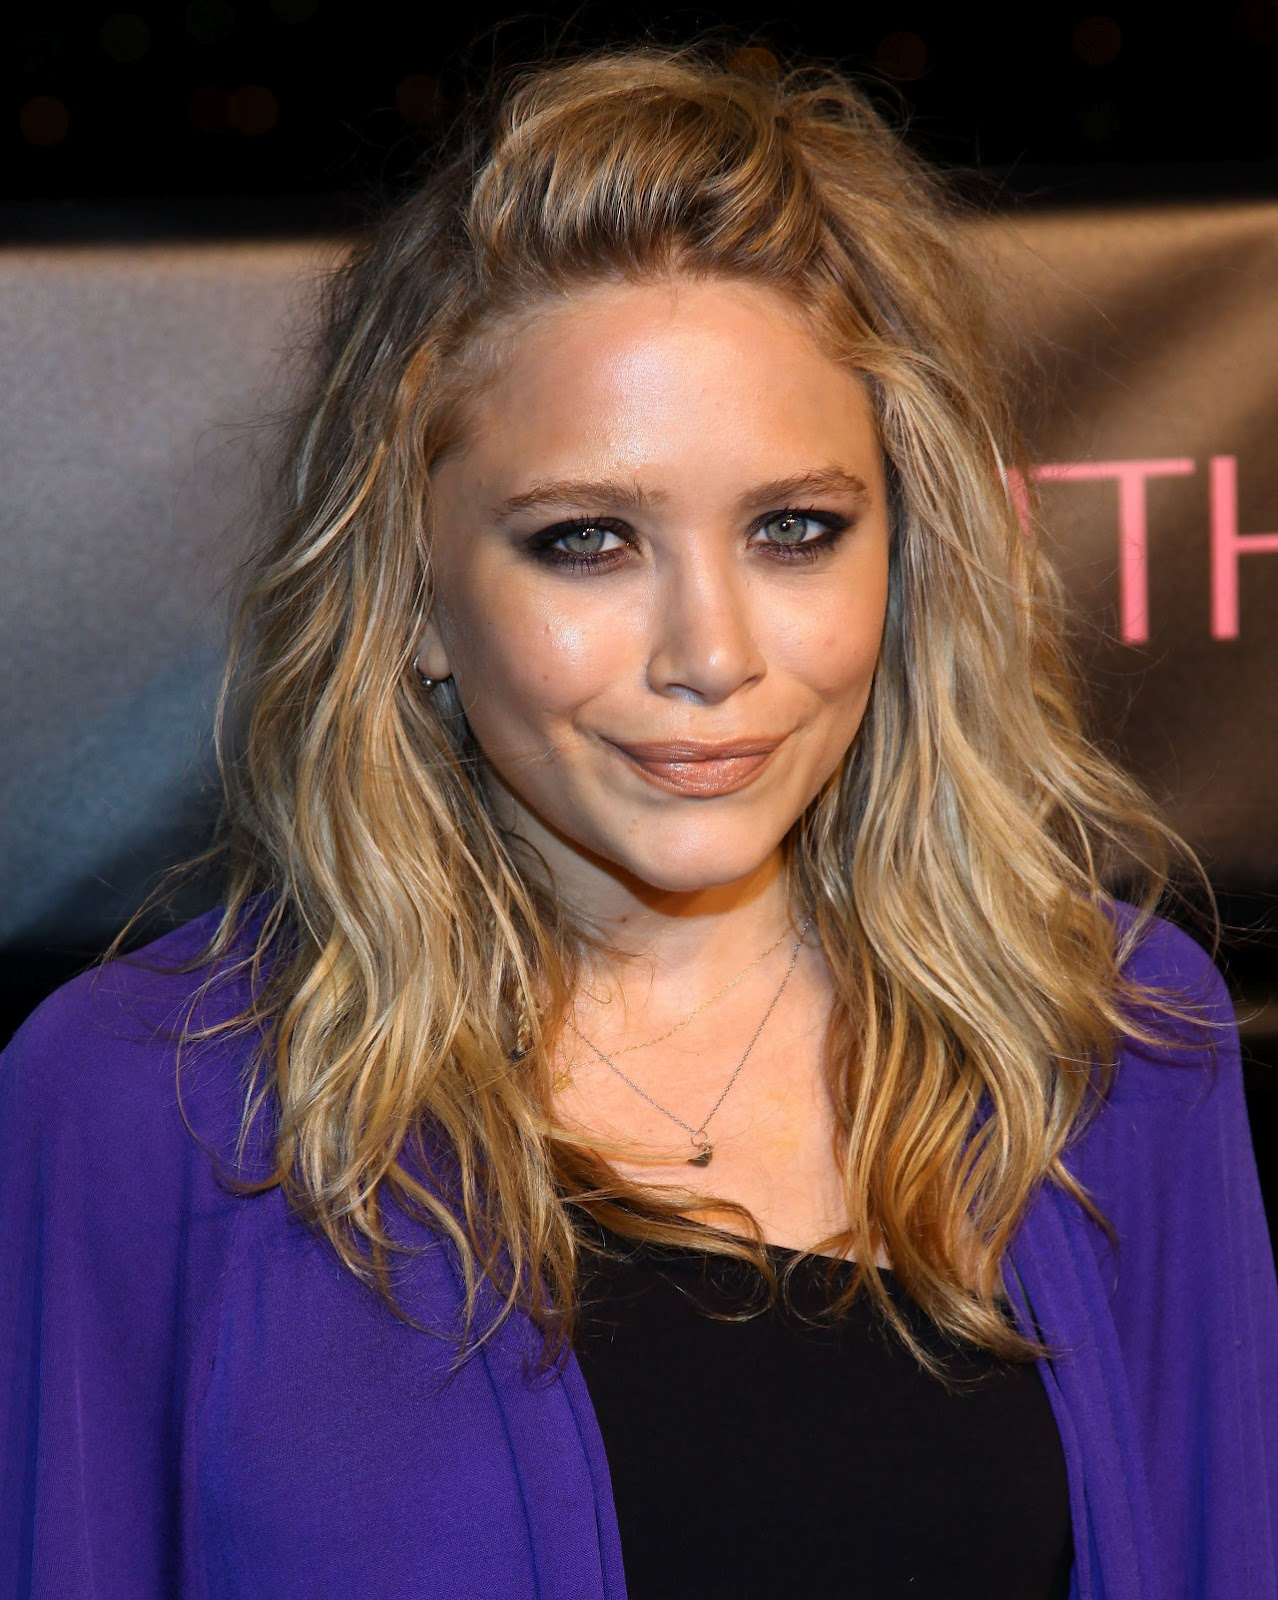 View the most popular Mary-Kate Olsen pix. Latest Most Viewed Popular.  Present Their collection Row' By Marion Heinrich. A warm welcome to our  newest user.